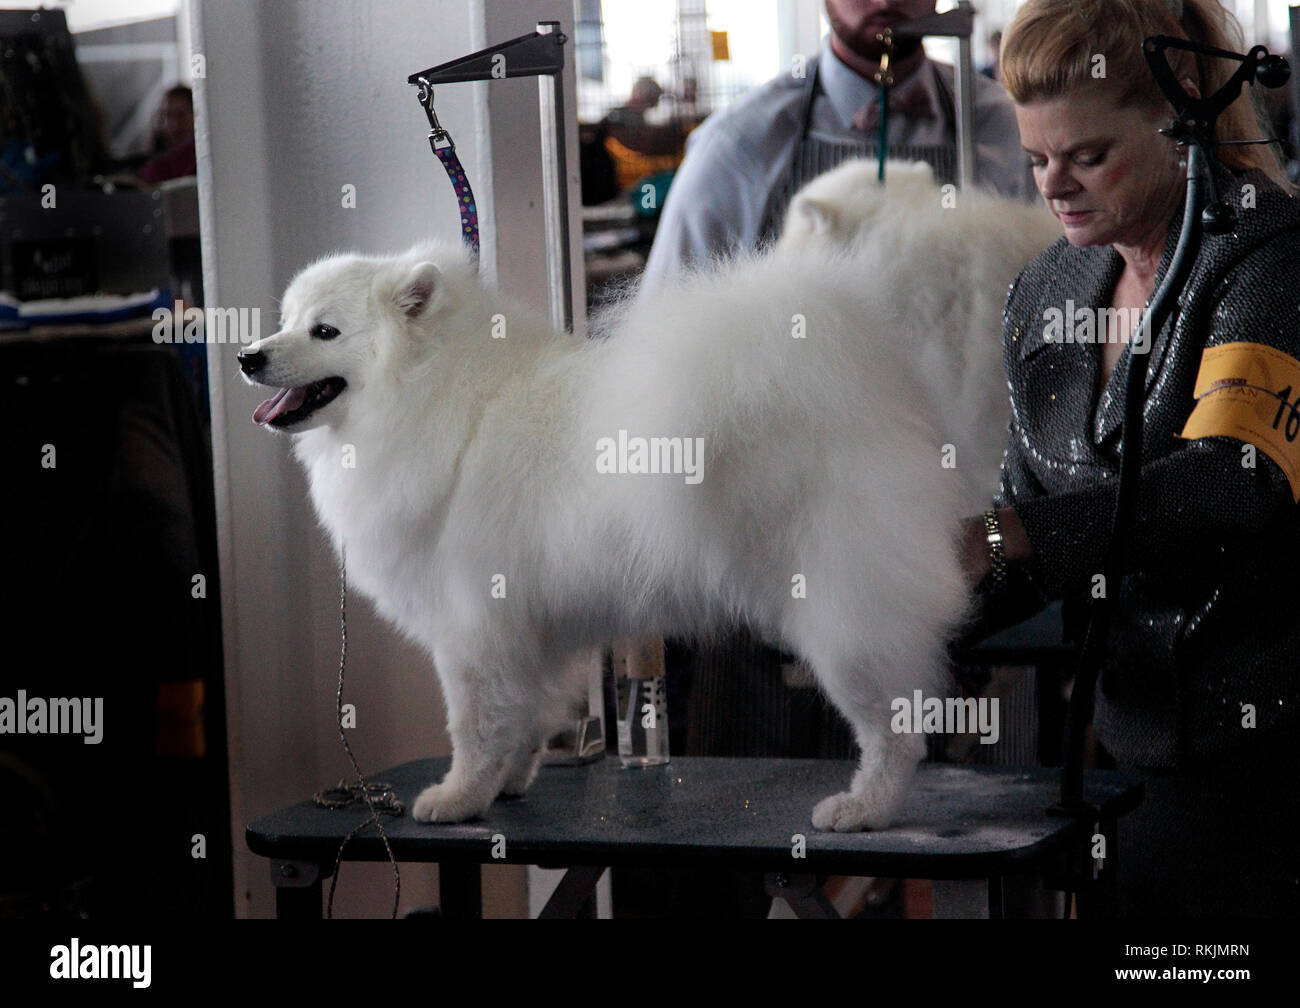 New York, United States. 11th Feb, 2019. Westminster Dog Show - New York City, 11 February, 2019: Alaskan Eskimo, Lulu being groomed before the Best of Breed Competition at the 143rd Annual Westminster Dog Show in New York City. Credit: Adam Stoltman/Alamy Live News - Stock Image